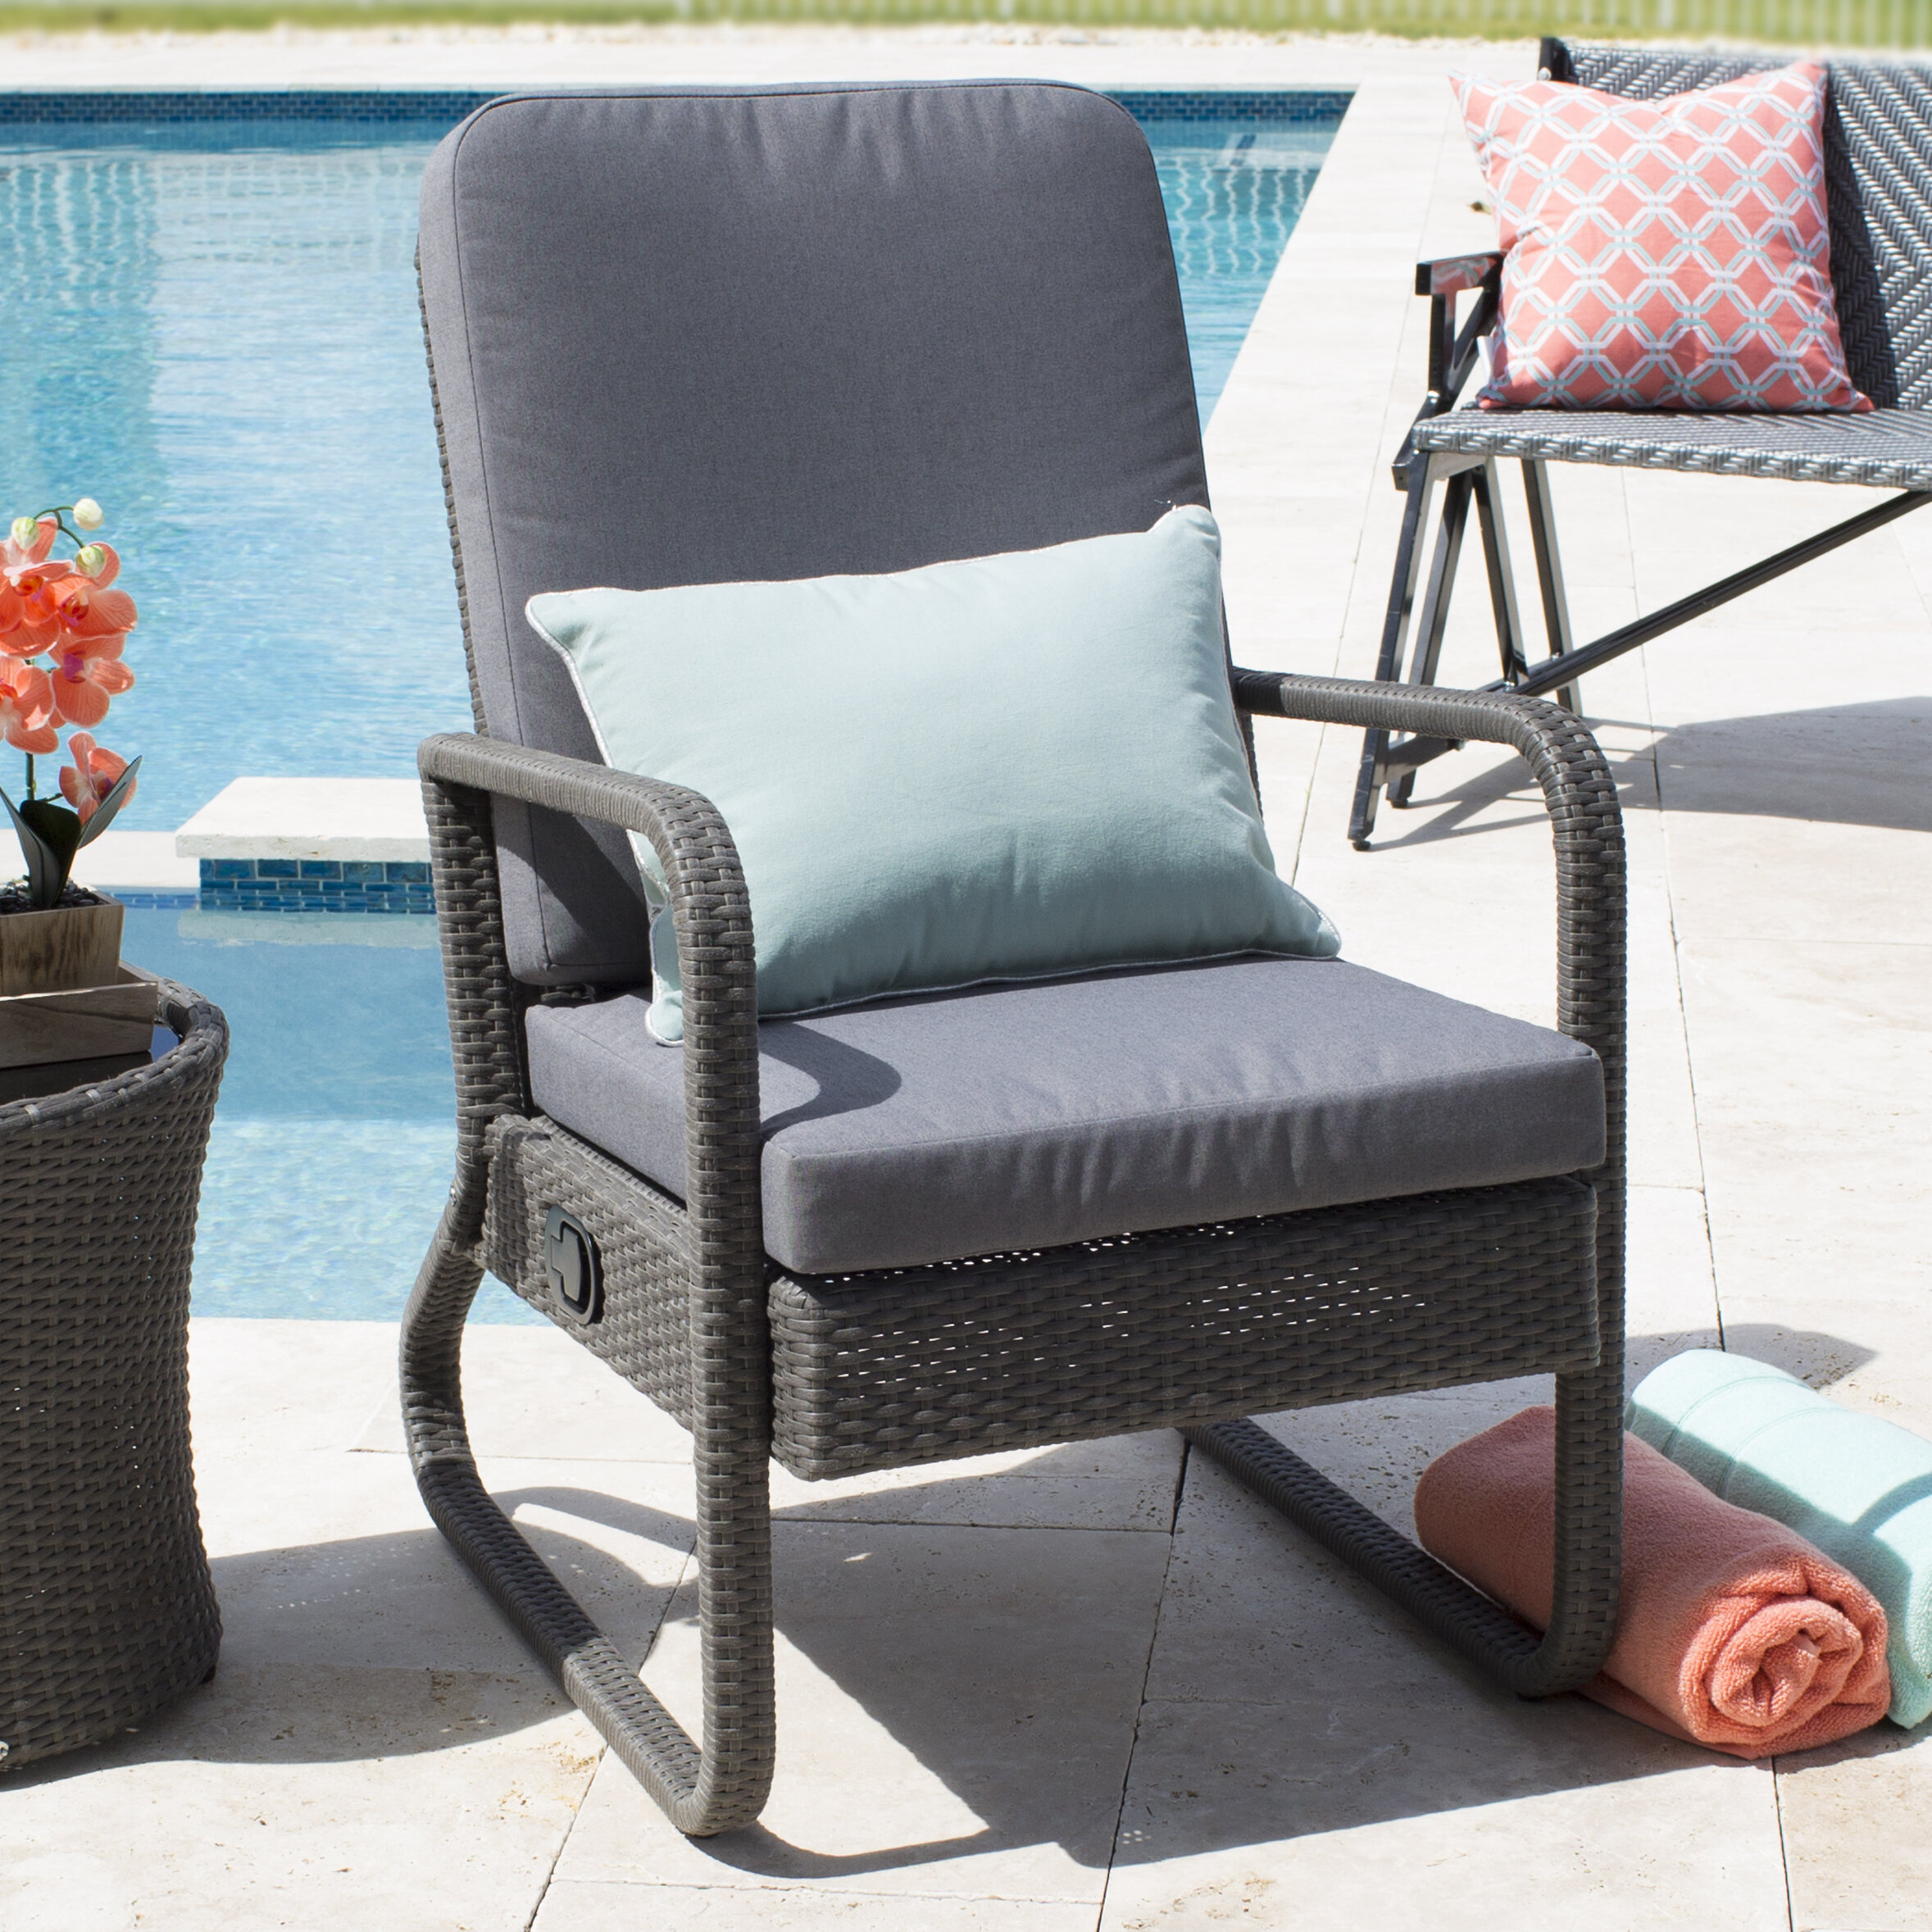 outdoor chairs for recliner braid lounge pics rattan chaise makeovers image furniture black patio